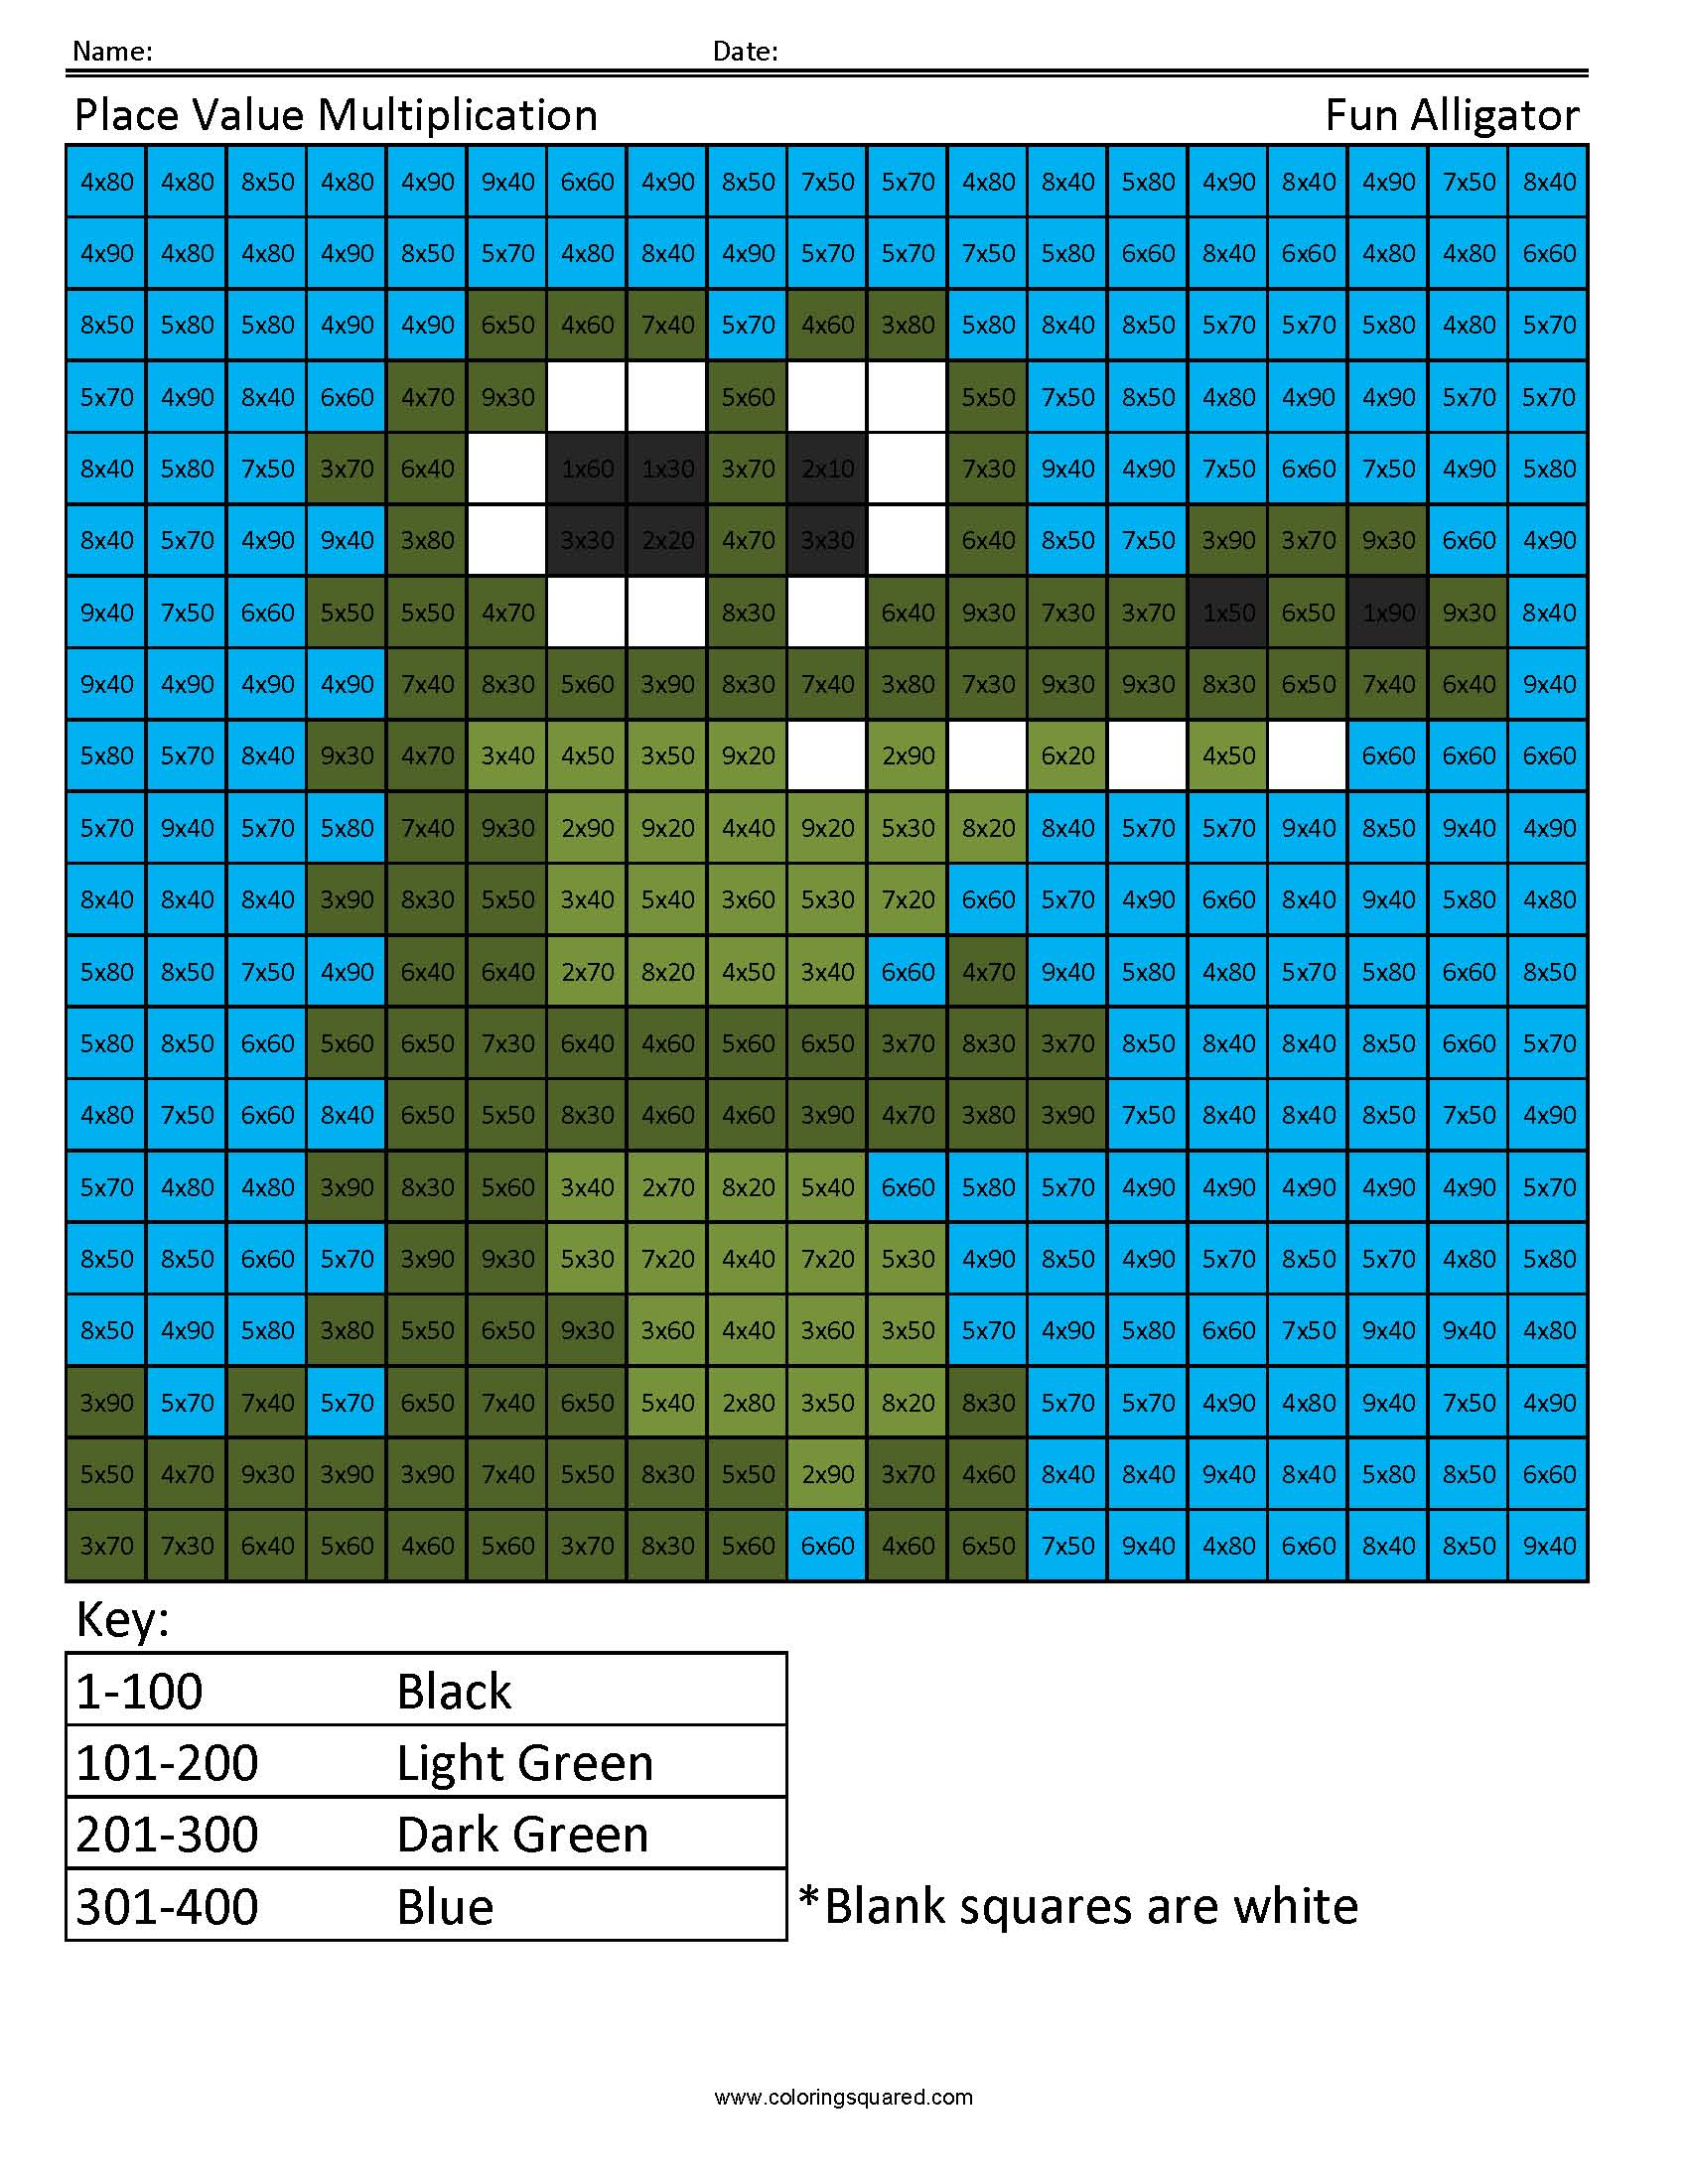 Place Value Multiplication Alligator